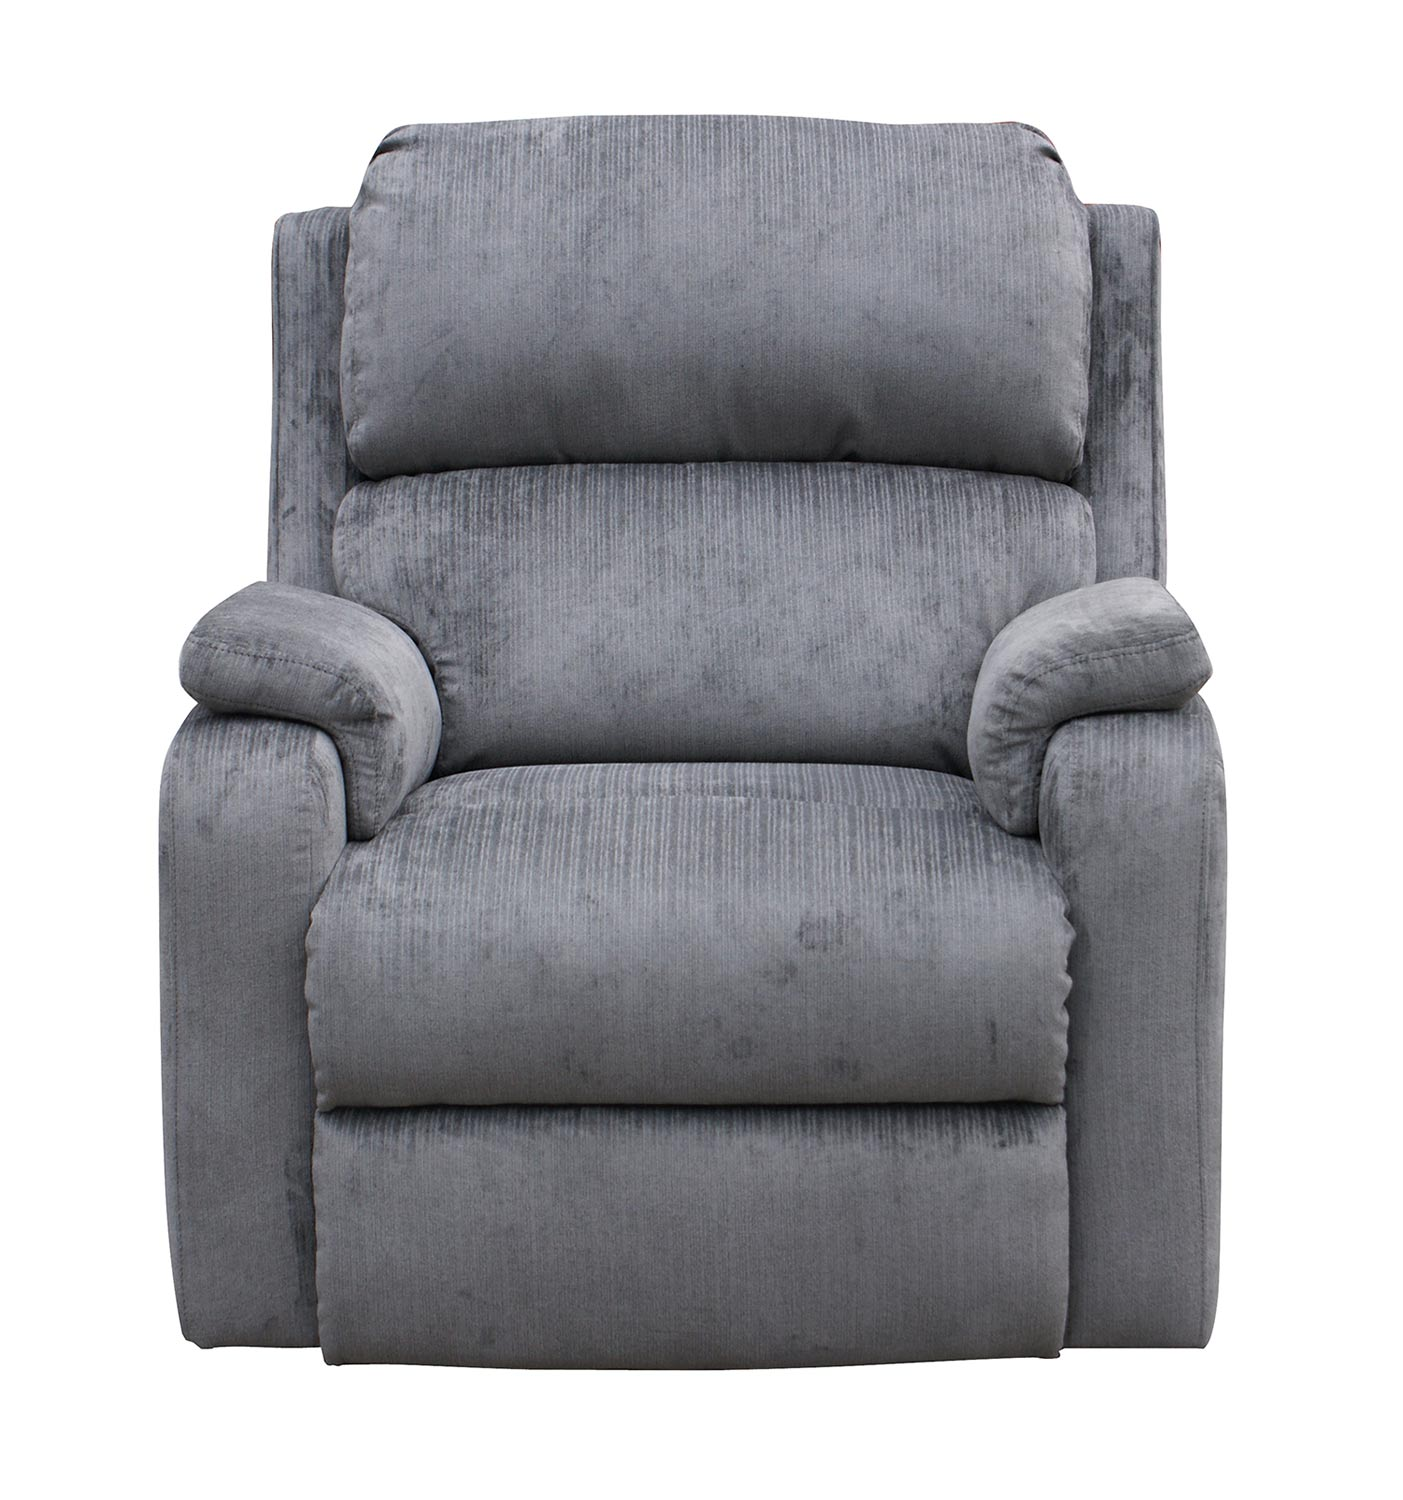 Barcalounger Vantage ll Casual Comforts Recliner ChairGray 6